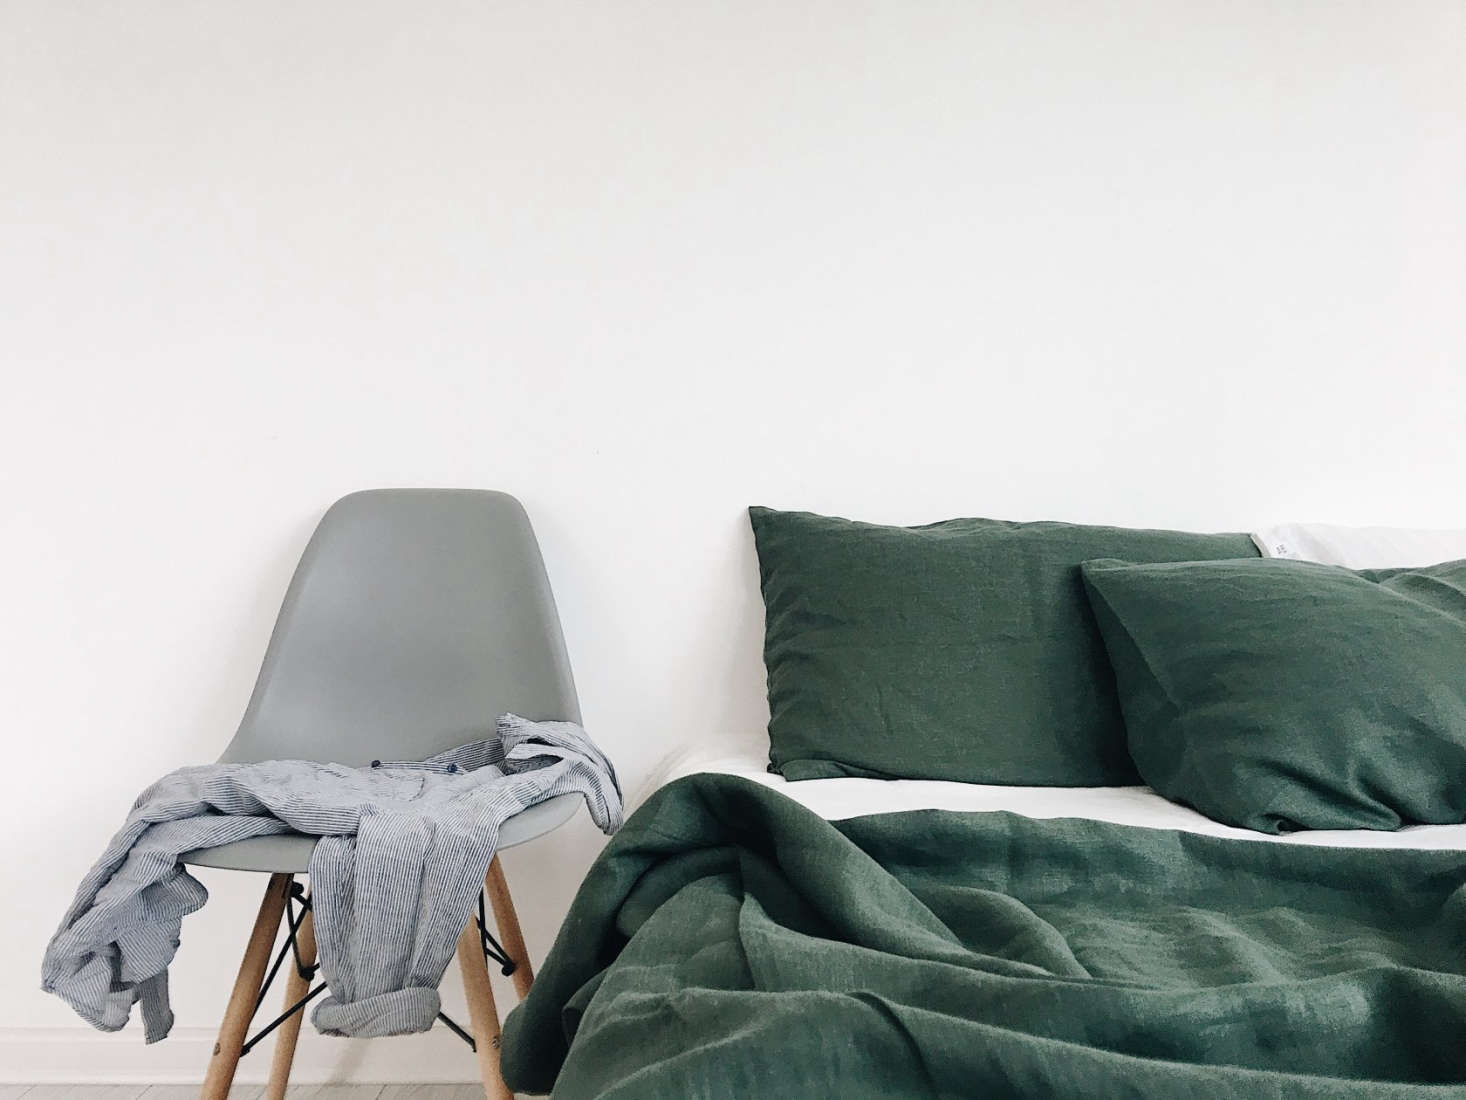 Bed Linens From Odessa In Shades Of Blue And Green